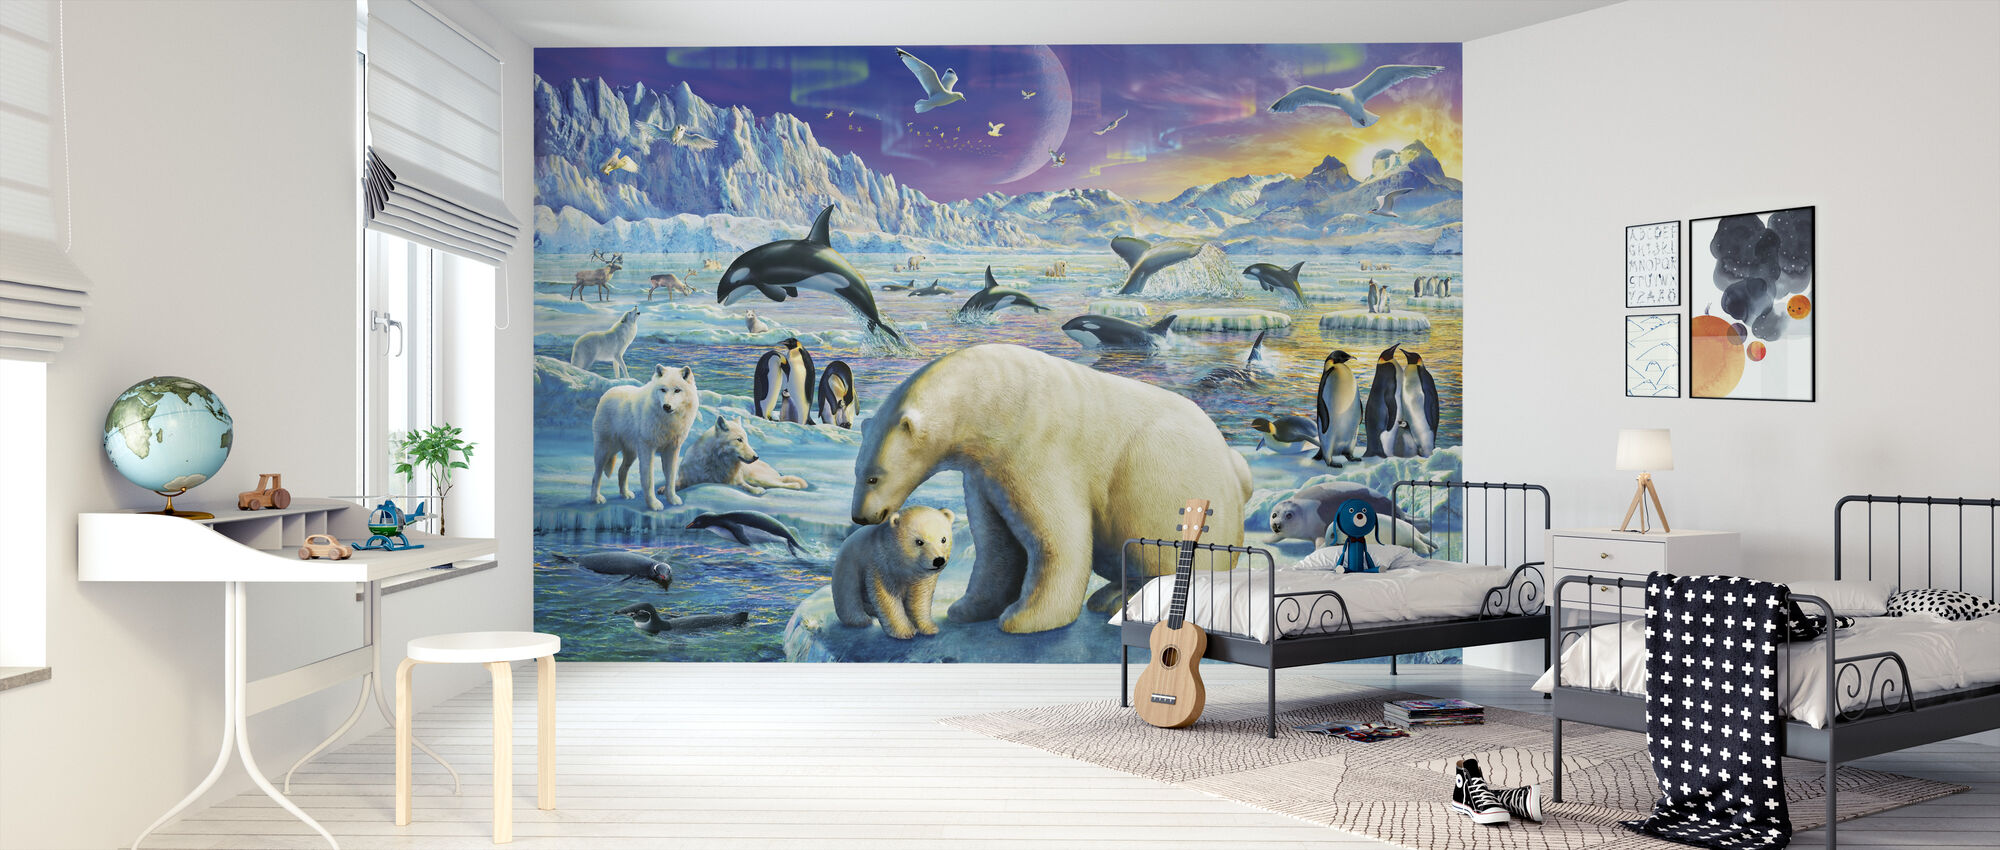 Arctic Night - Wallpaper - Kids Room